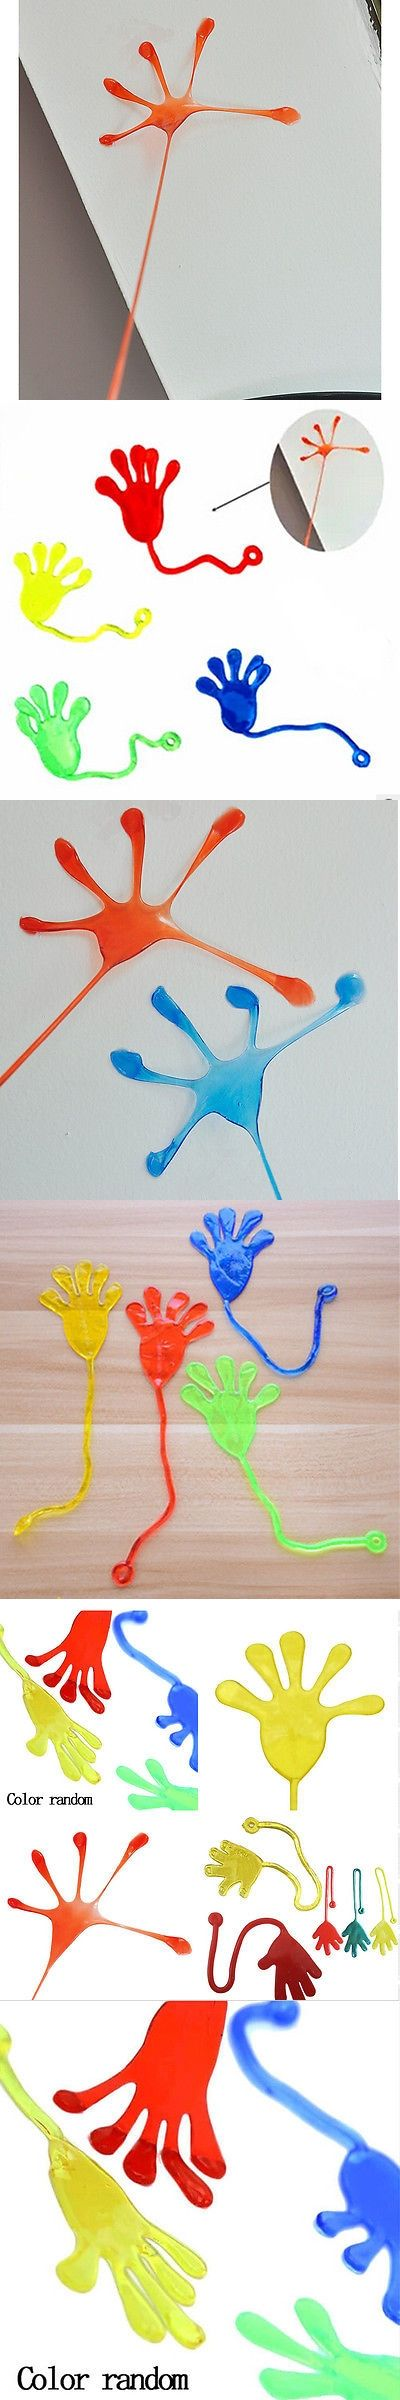 Cool Elastic Sticky Squishy Slap Hands Palm Toy Children Kid Party Favors Gift